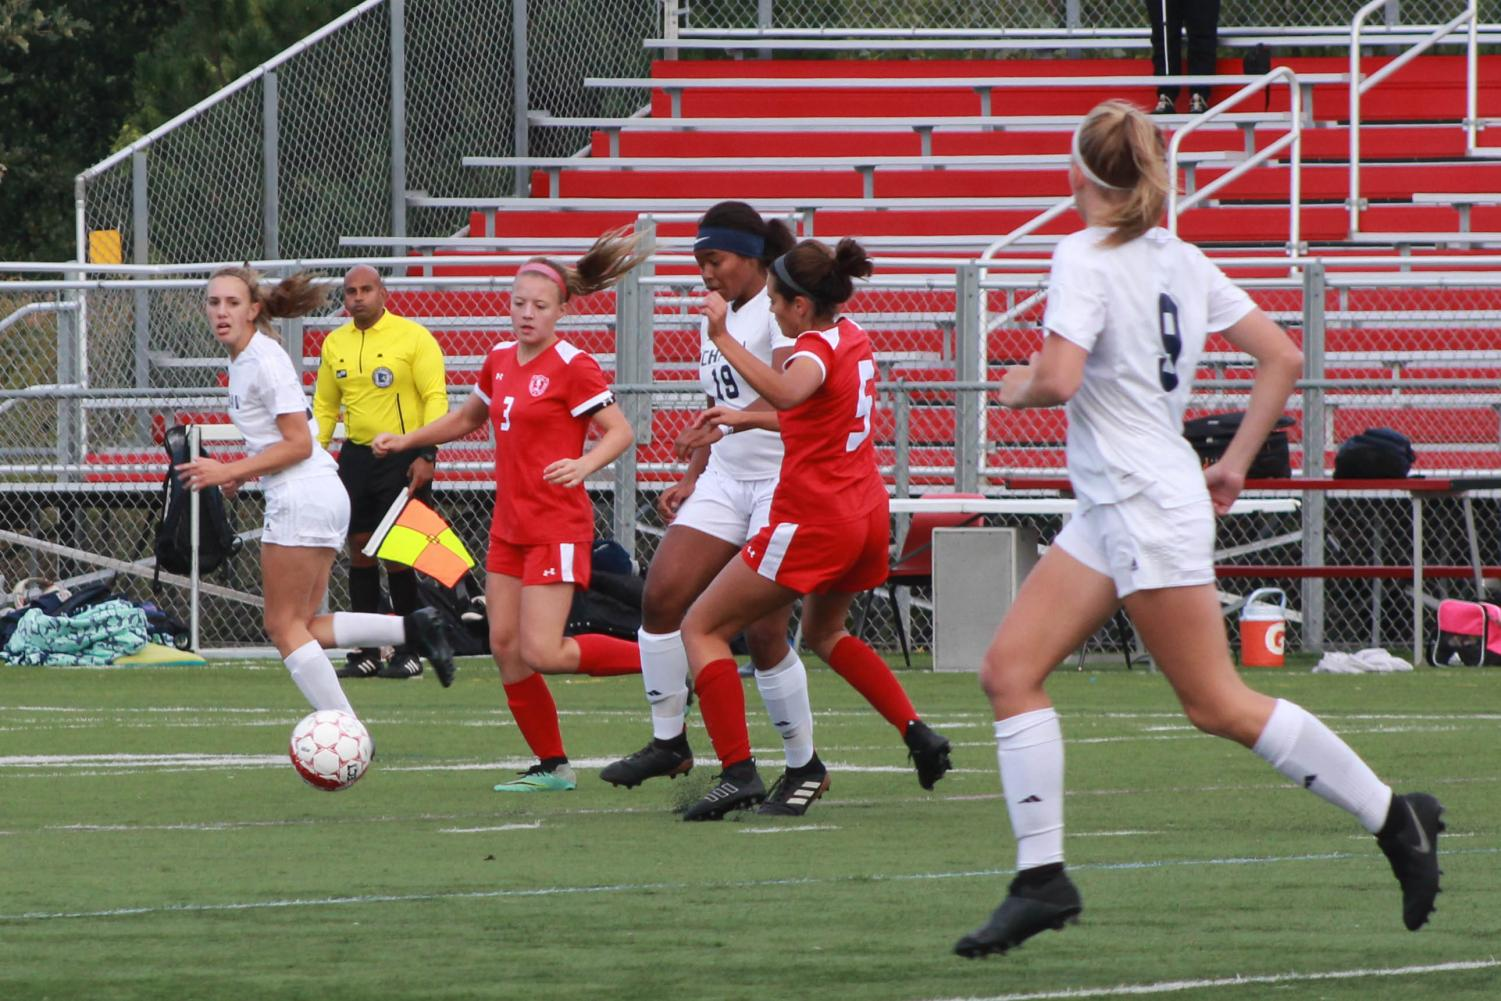 BSM girls' soccer looks to have a successful year.